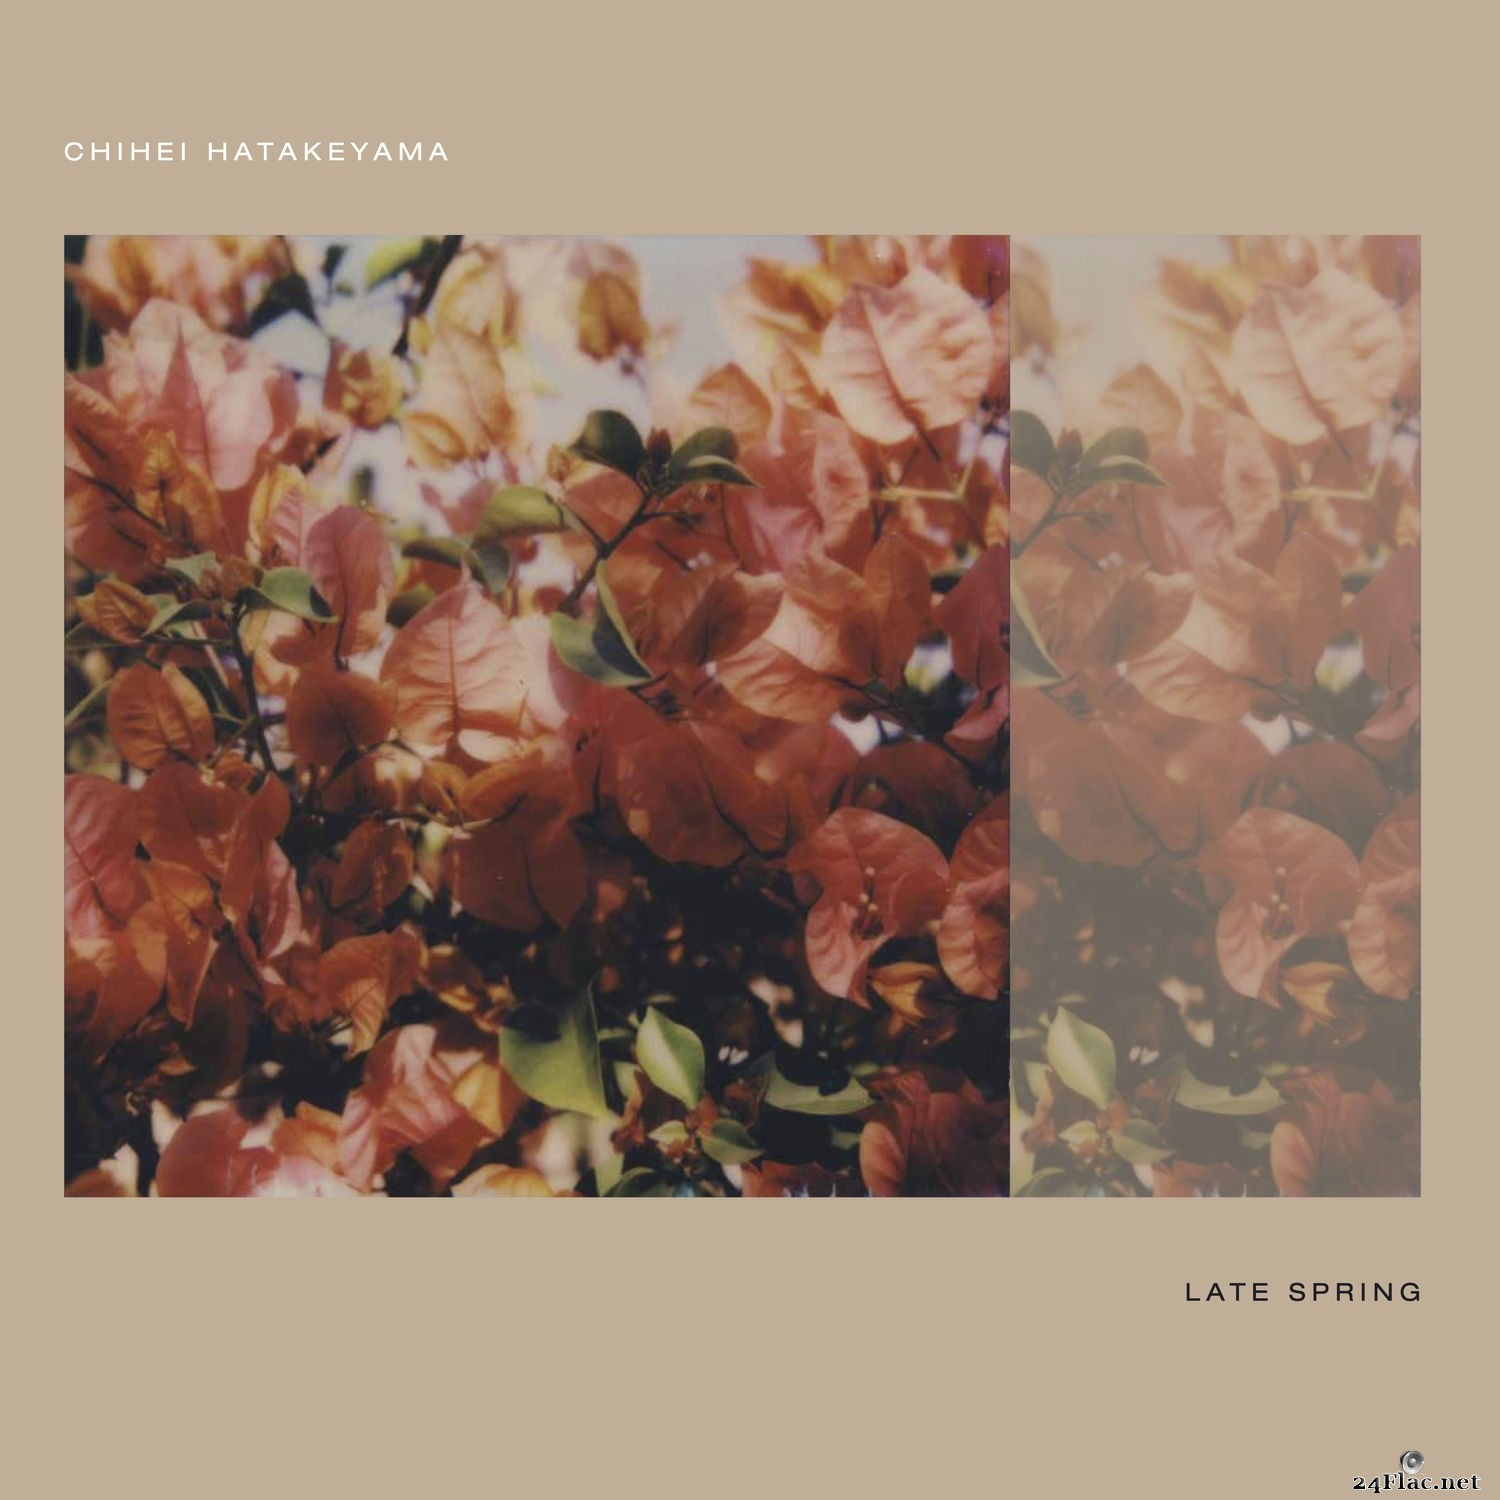 Chihei Hatakeyama - Late Spring (2021) Hi-Res